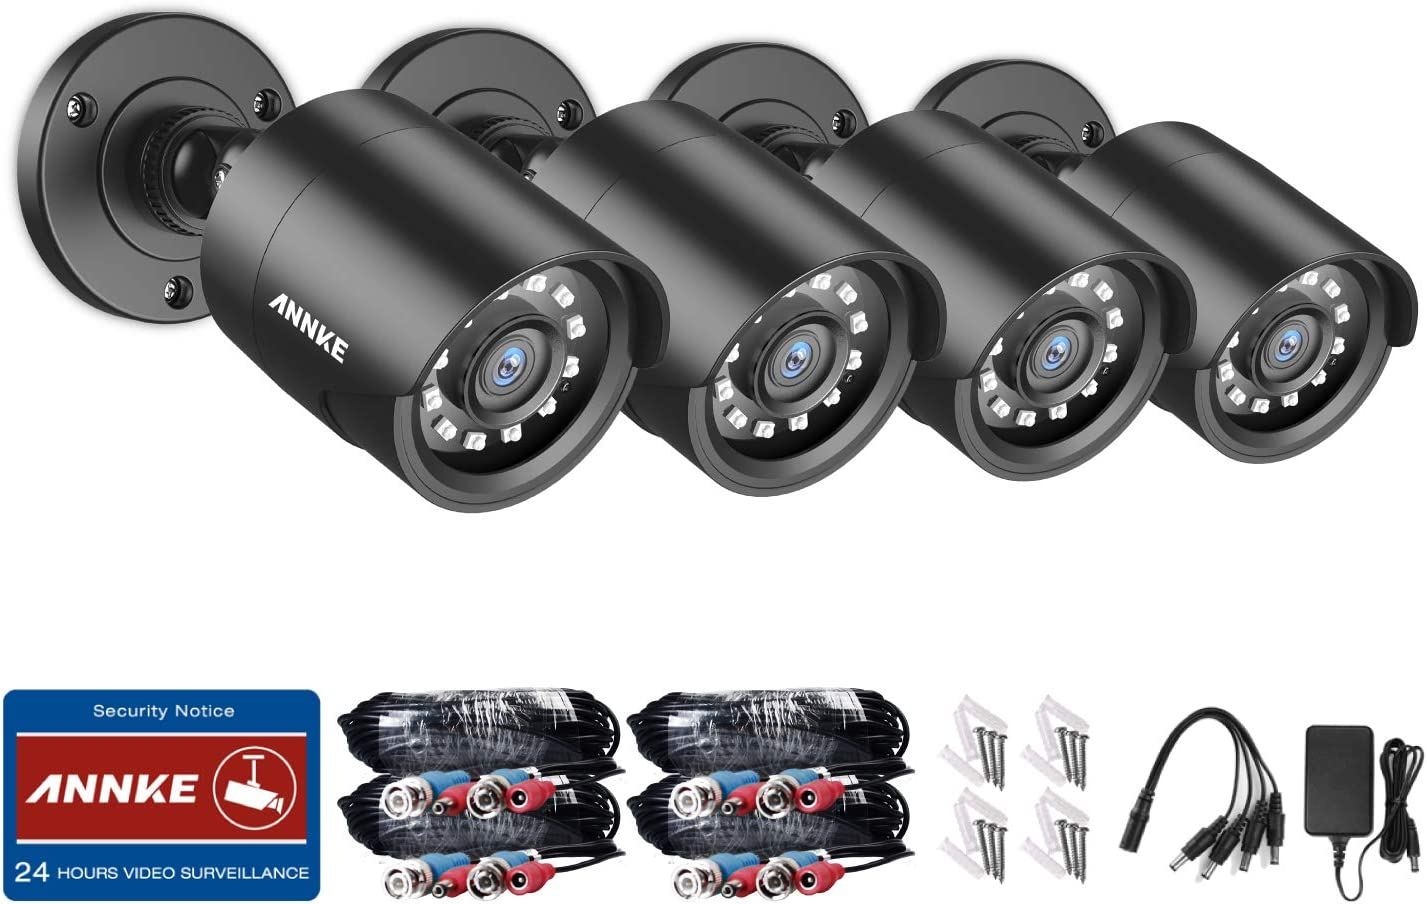 ANNKE 4-Packed 1080P HD-TVI Security Camera 2.0MP Hi-Resolution Indoor Outdoor Bullet Camera with 100ft Super Night Vision, IP66 Weatherproof Housing, Smart IR-Cut